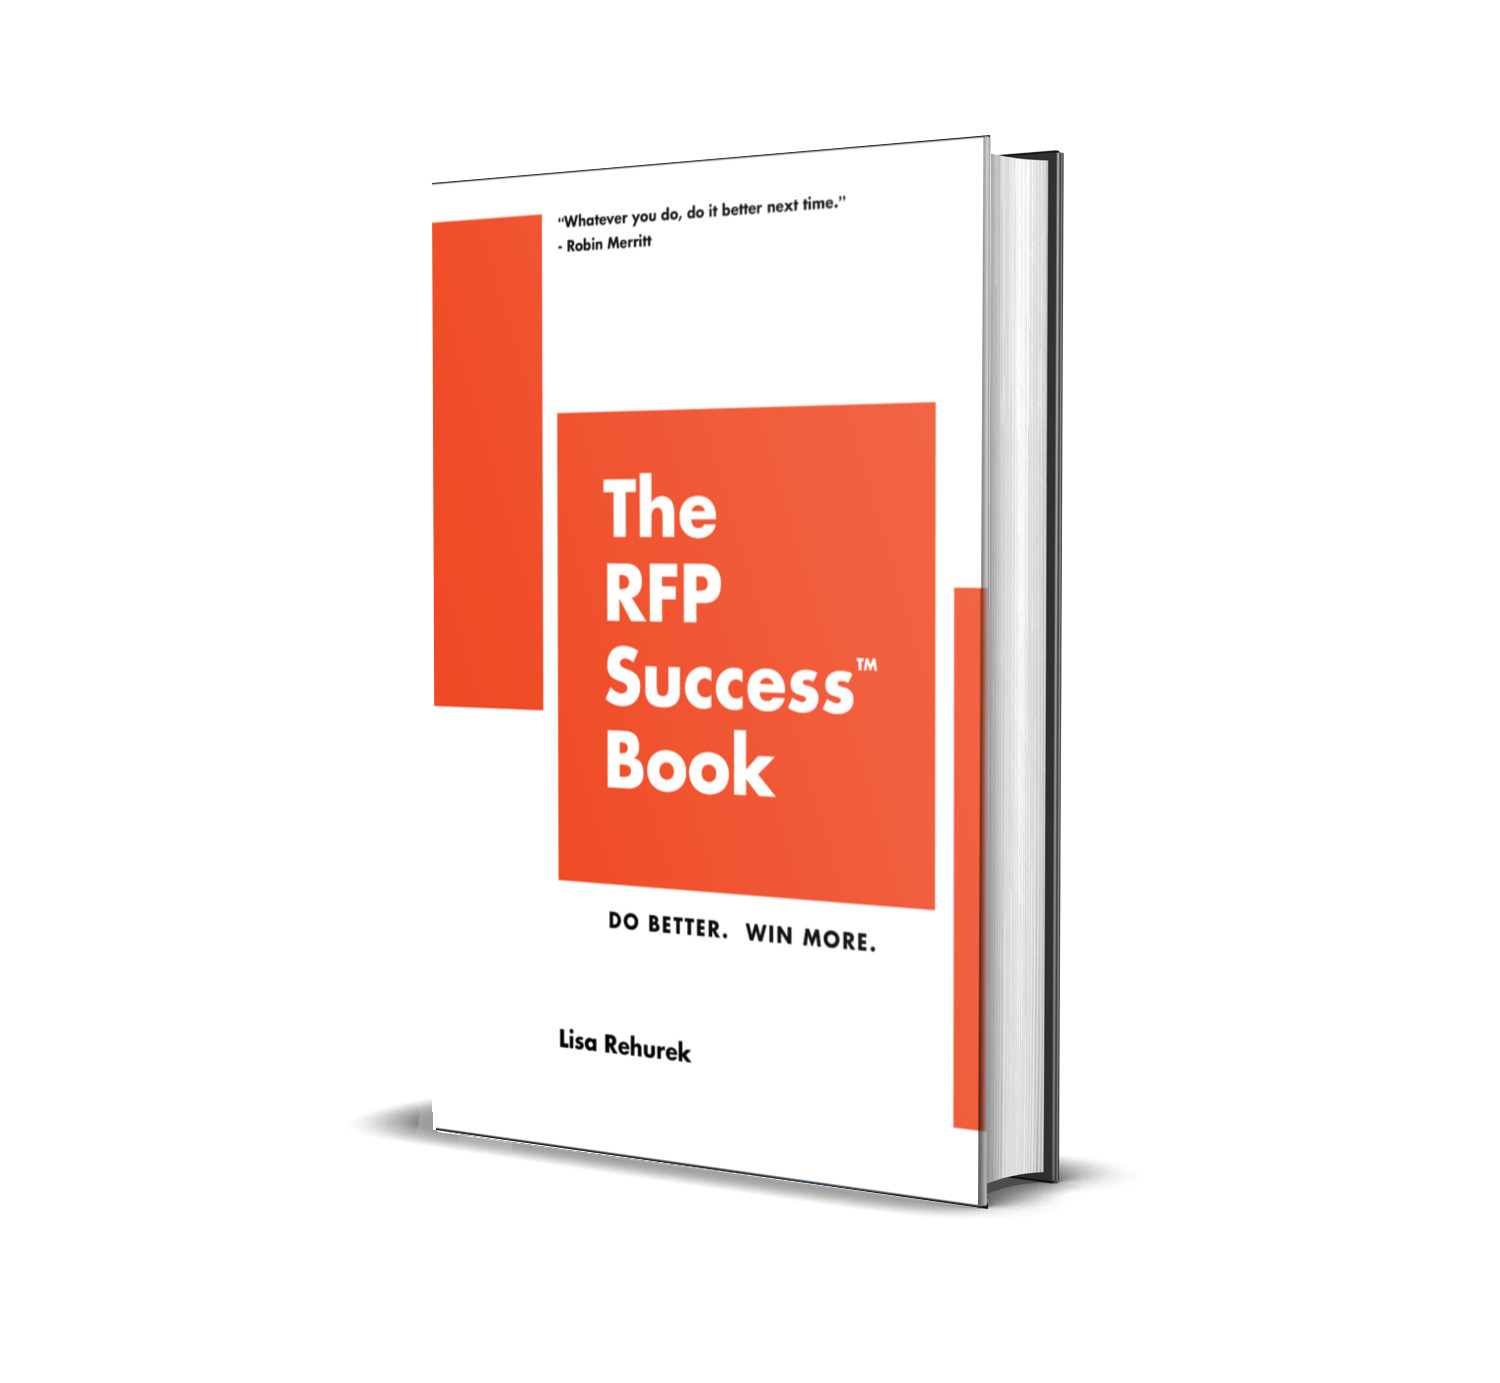 Don't have your own copy of The RFP Success™ Book, yet? !? - WELL, LET'S CHANGE THAT! GRAB YOUR COPY HERE.